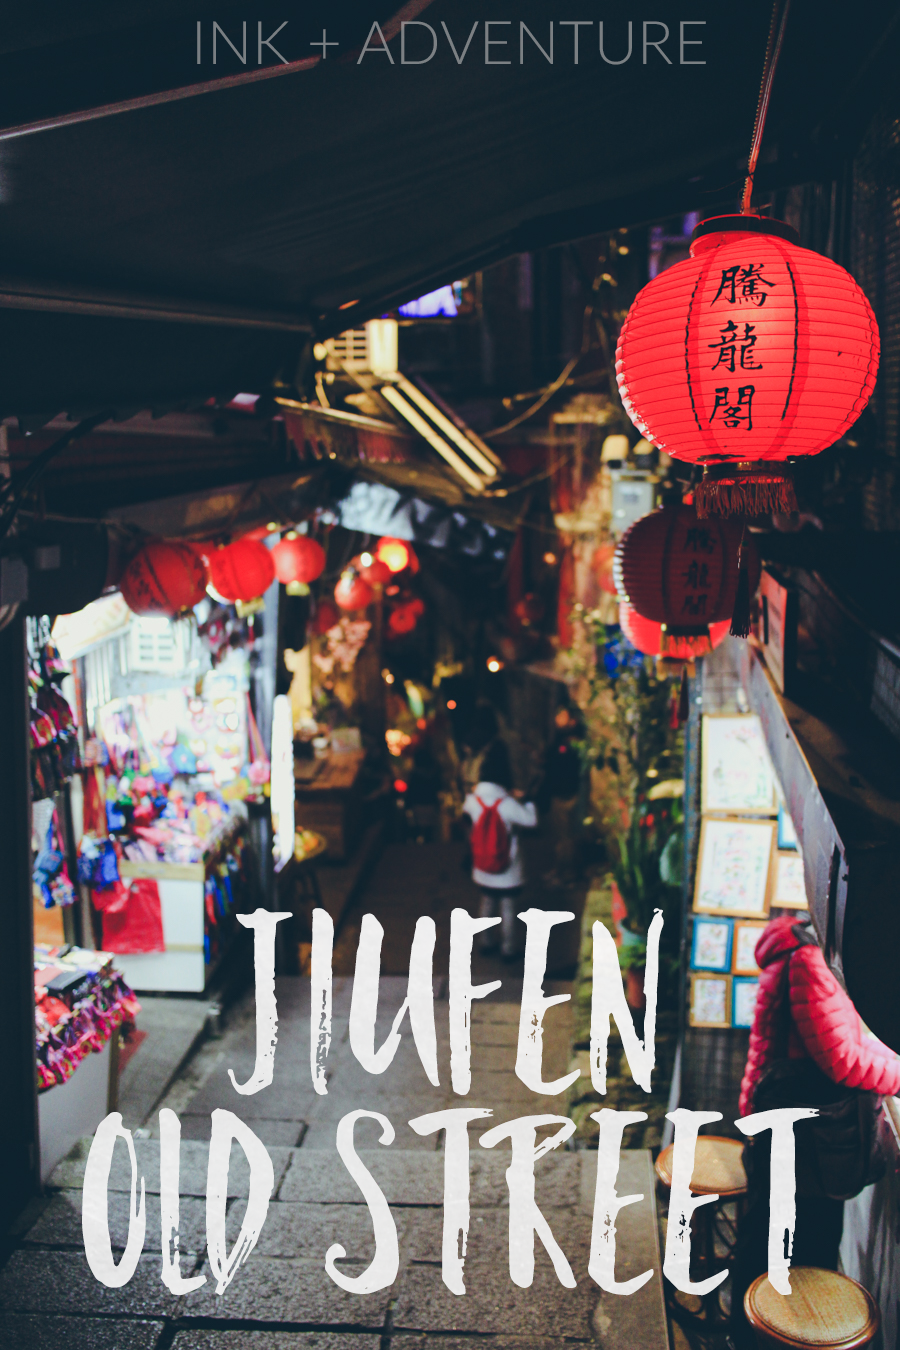 Jiufen Old Street | wander through magical alleyways lined with red lanterns, filled with shops and stone stairways, local Taiwanese delicacies and famous tea houses.